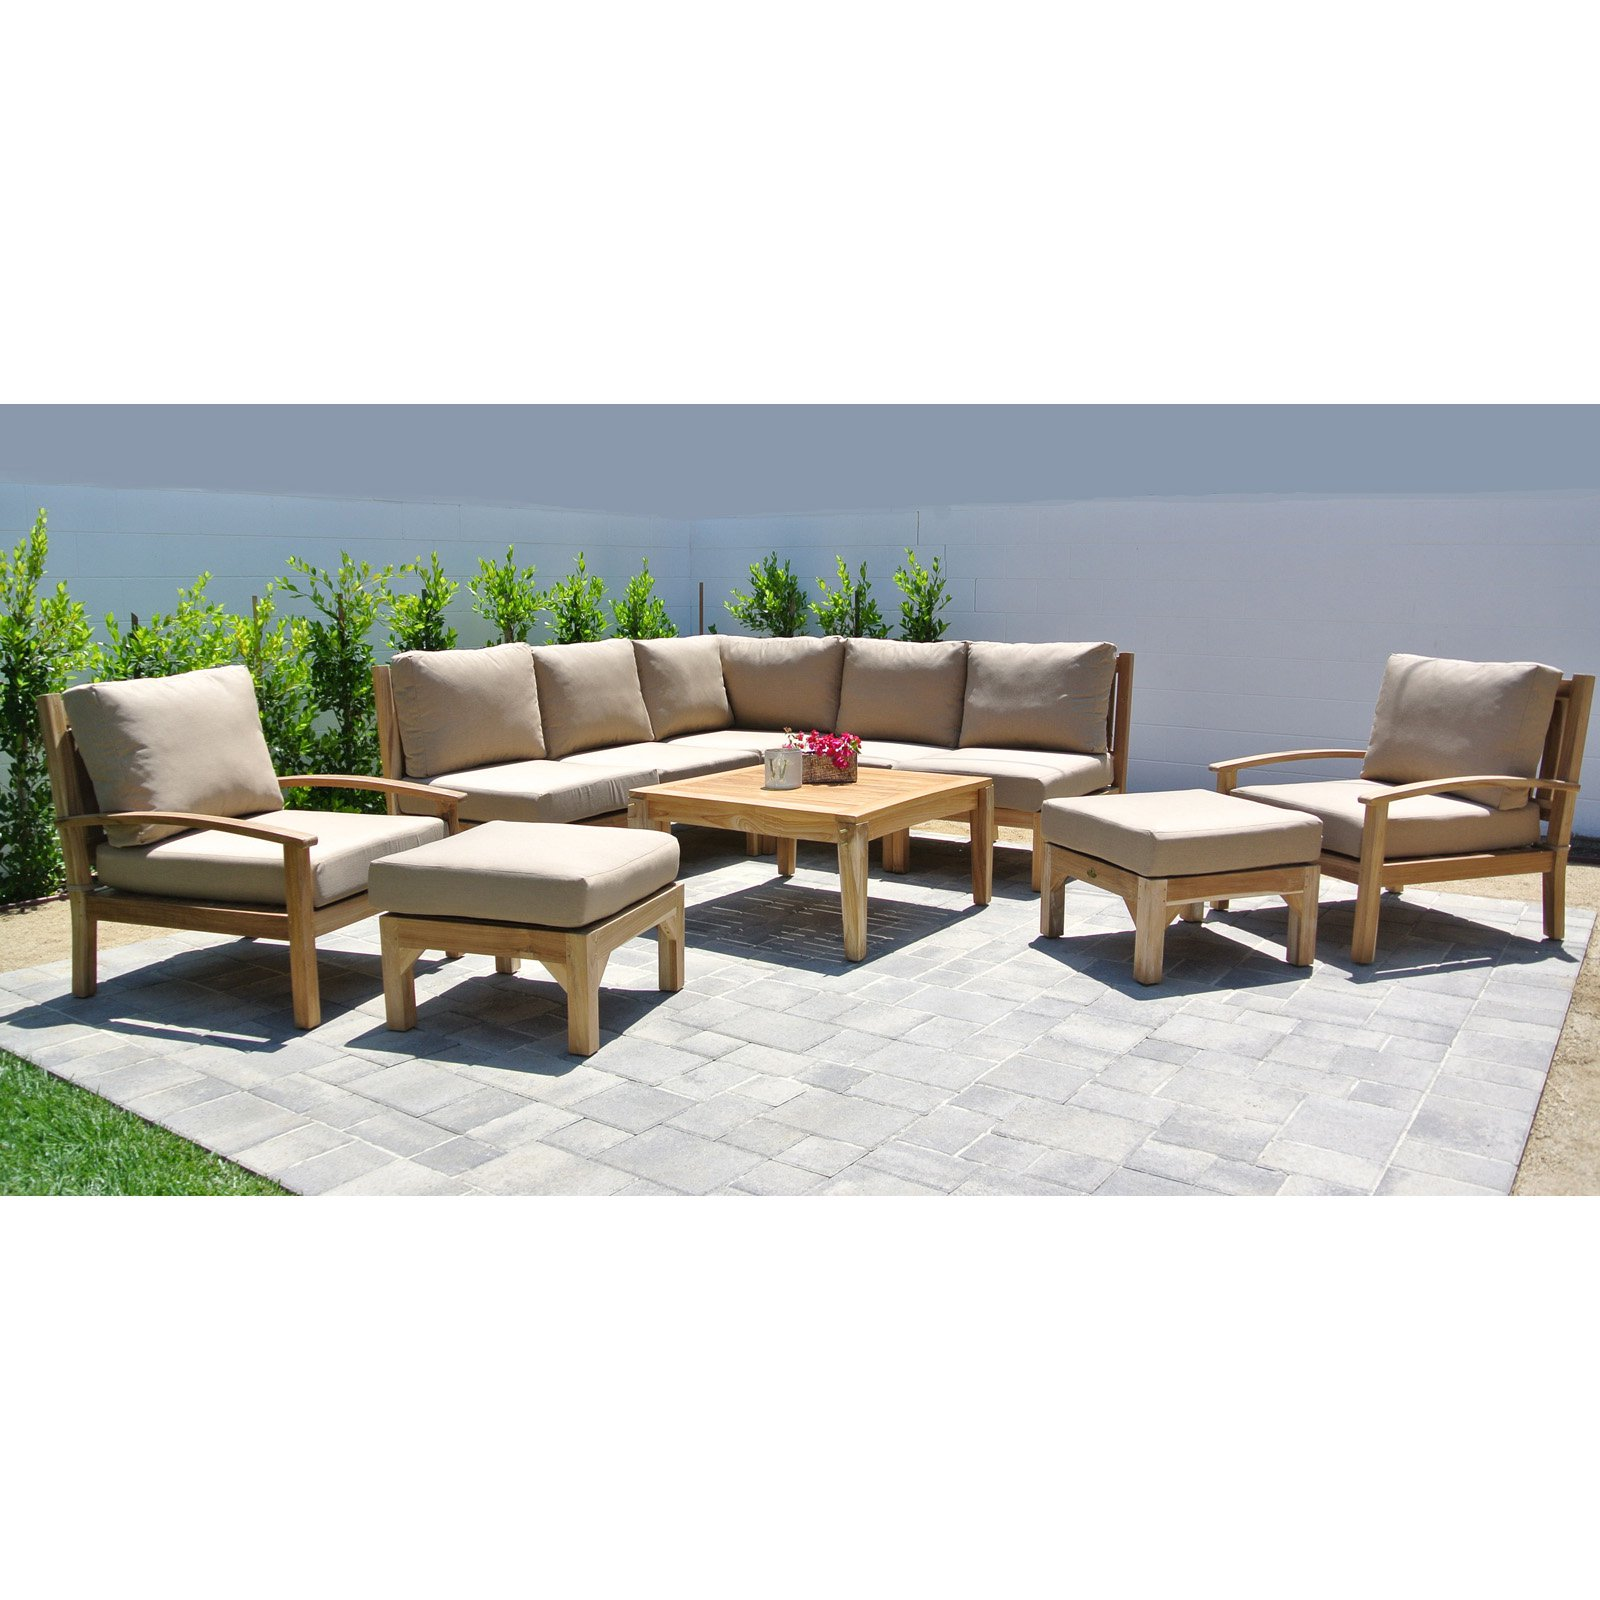 Willow Creek Huntington 10 Piece Teak Sectional Patio Conversation Set with Square Chat Table